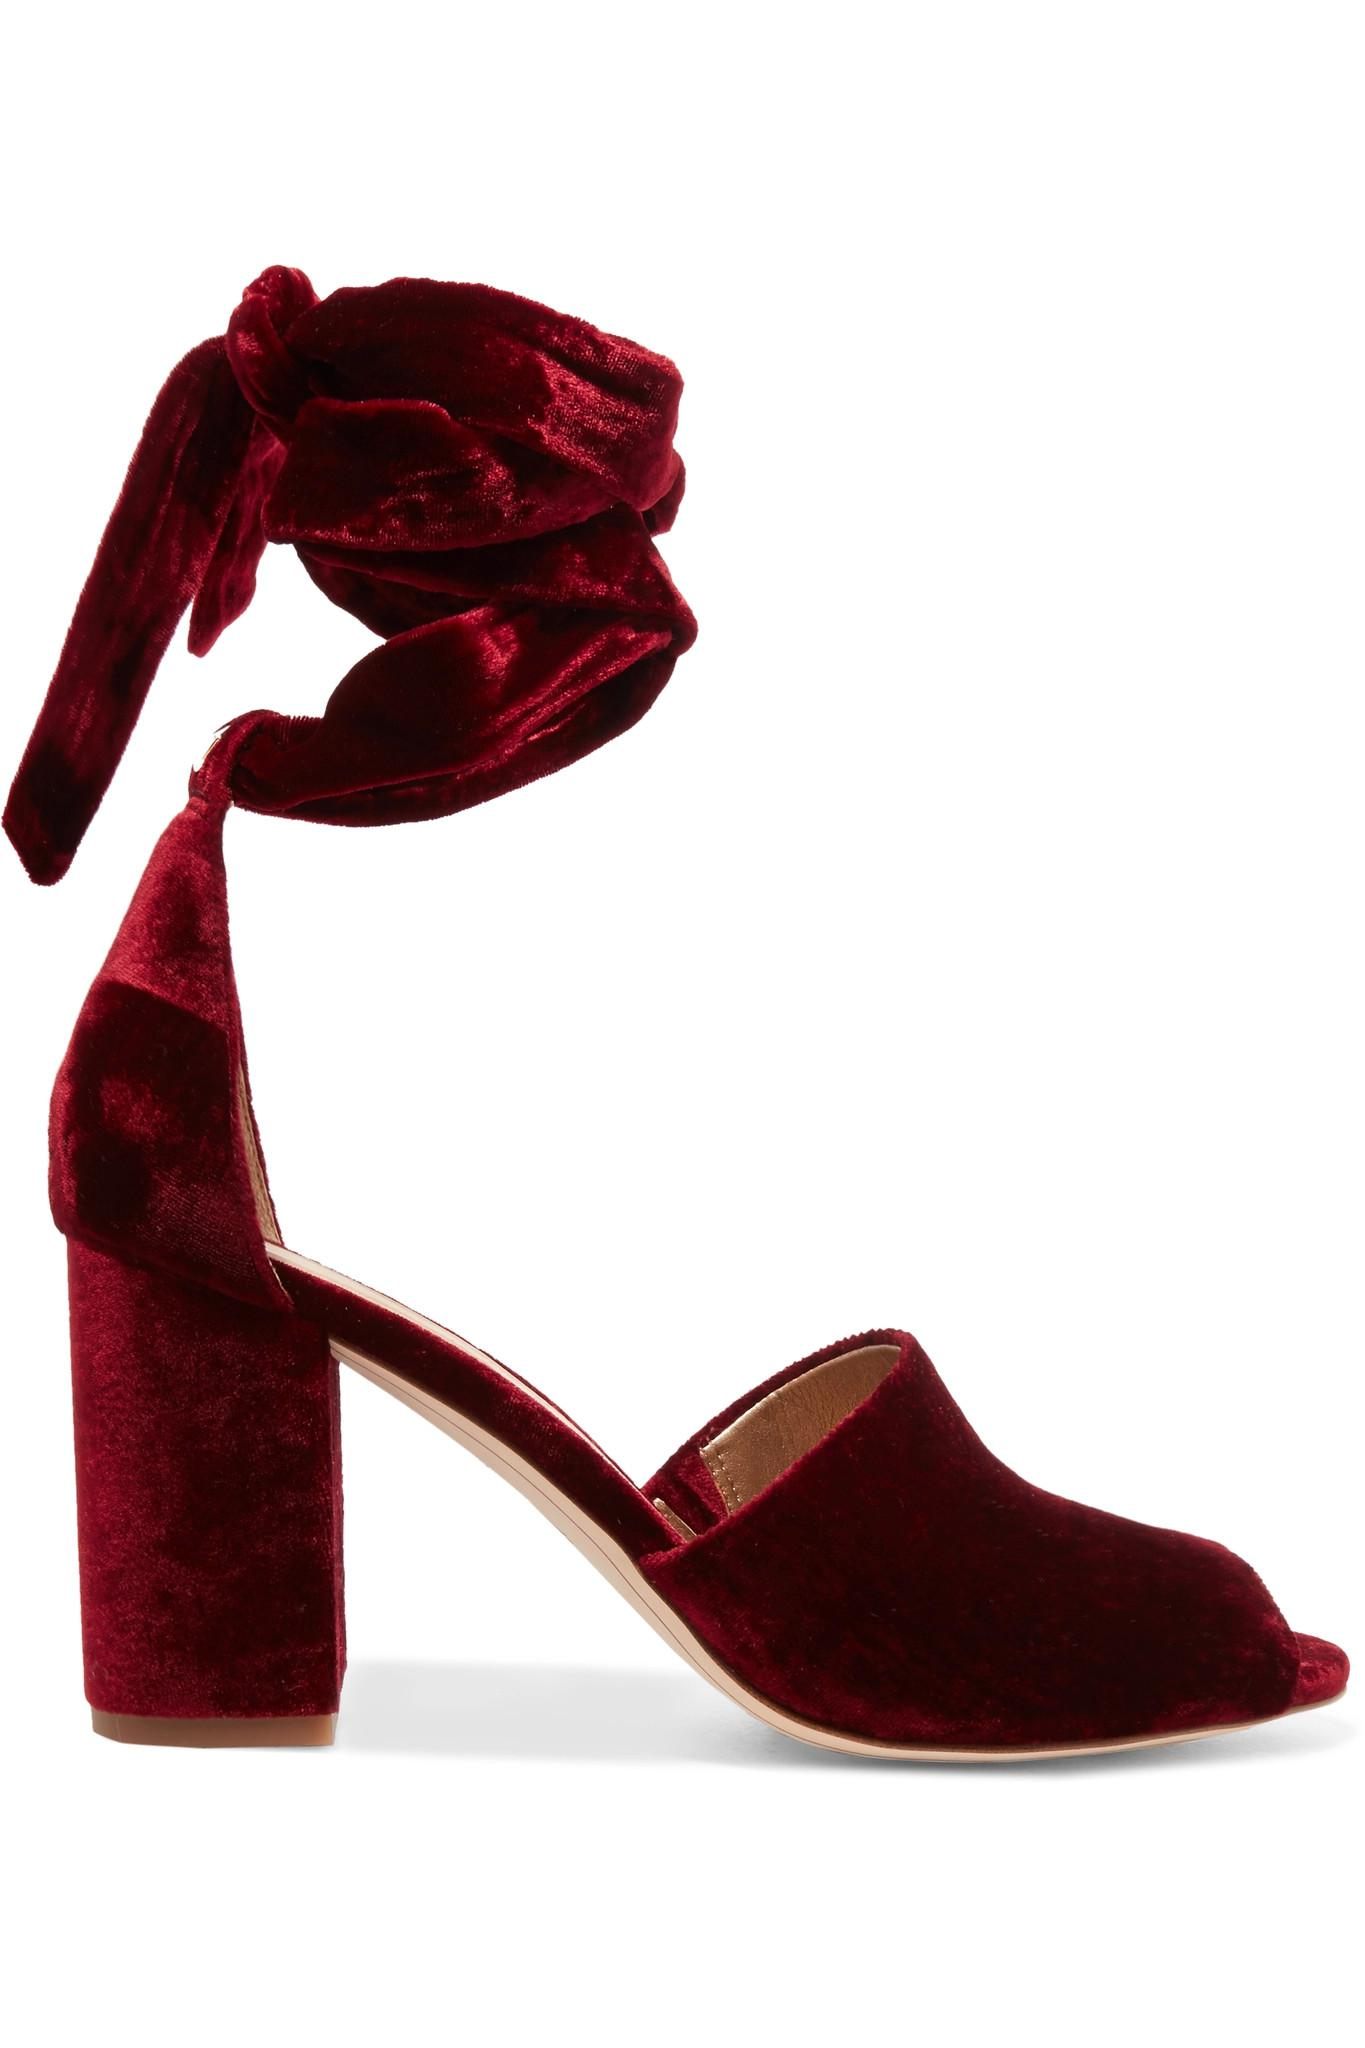 10d6d9eba710a Sam Edelman Odele Velvet Sandals in Red - Lyst